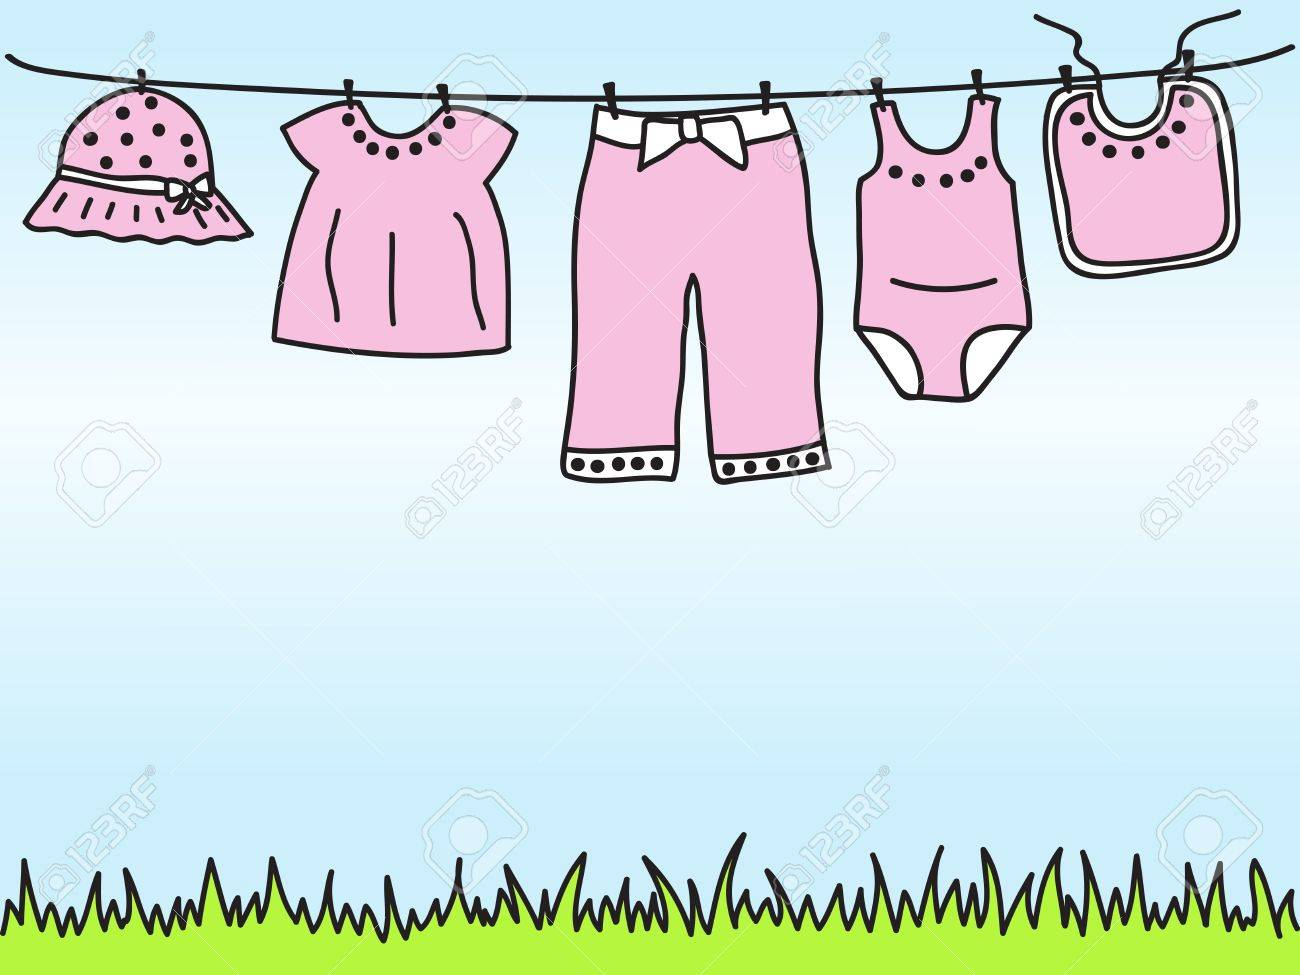 Baby girl clothes on clothesline - hand drawn illustration Stock Vector - 14804017